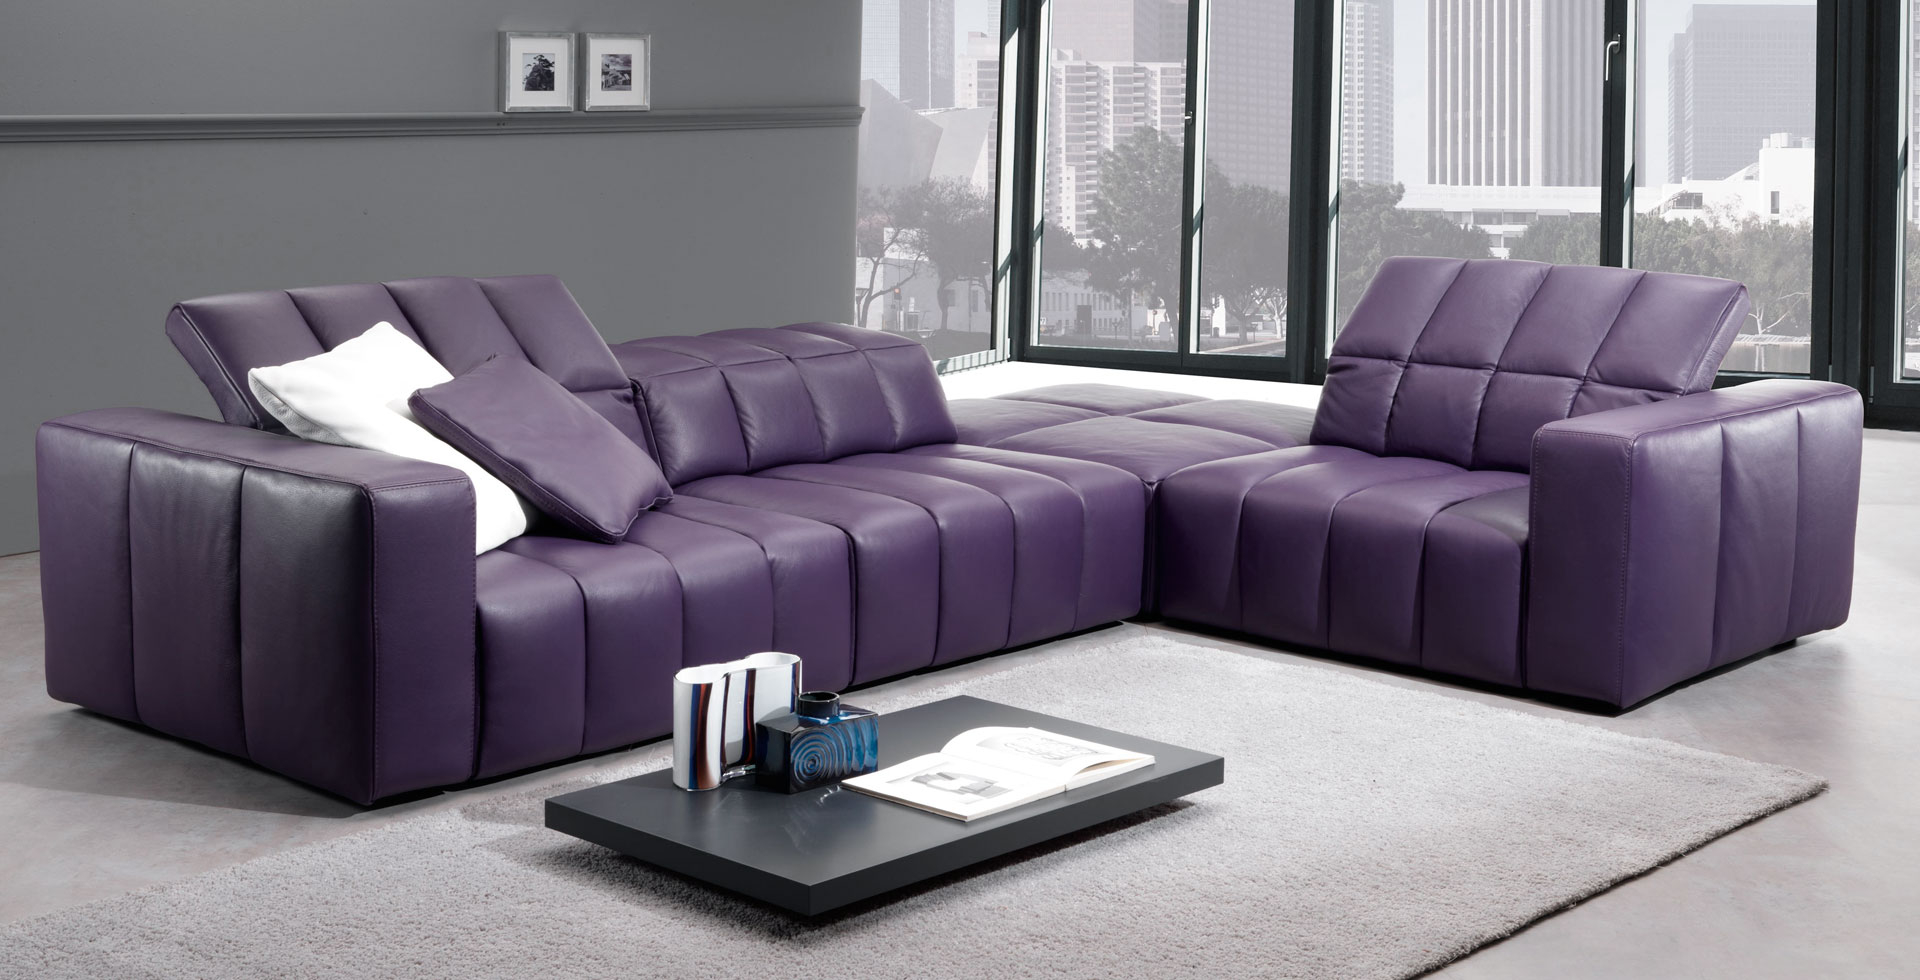 Genial Purple Leather Sectional 3